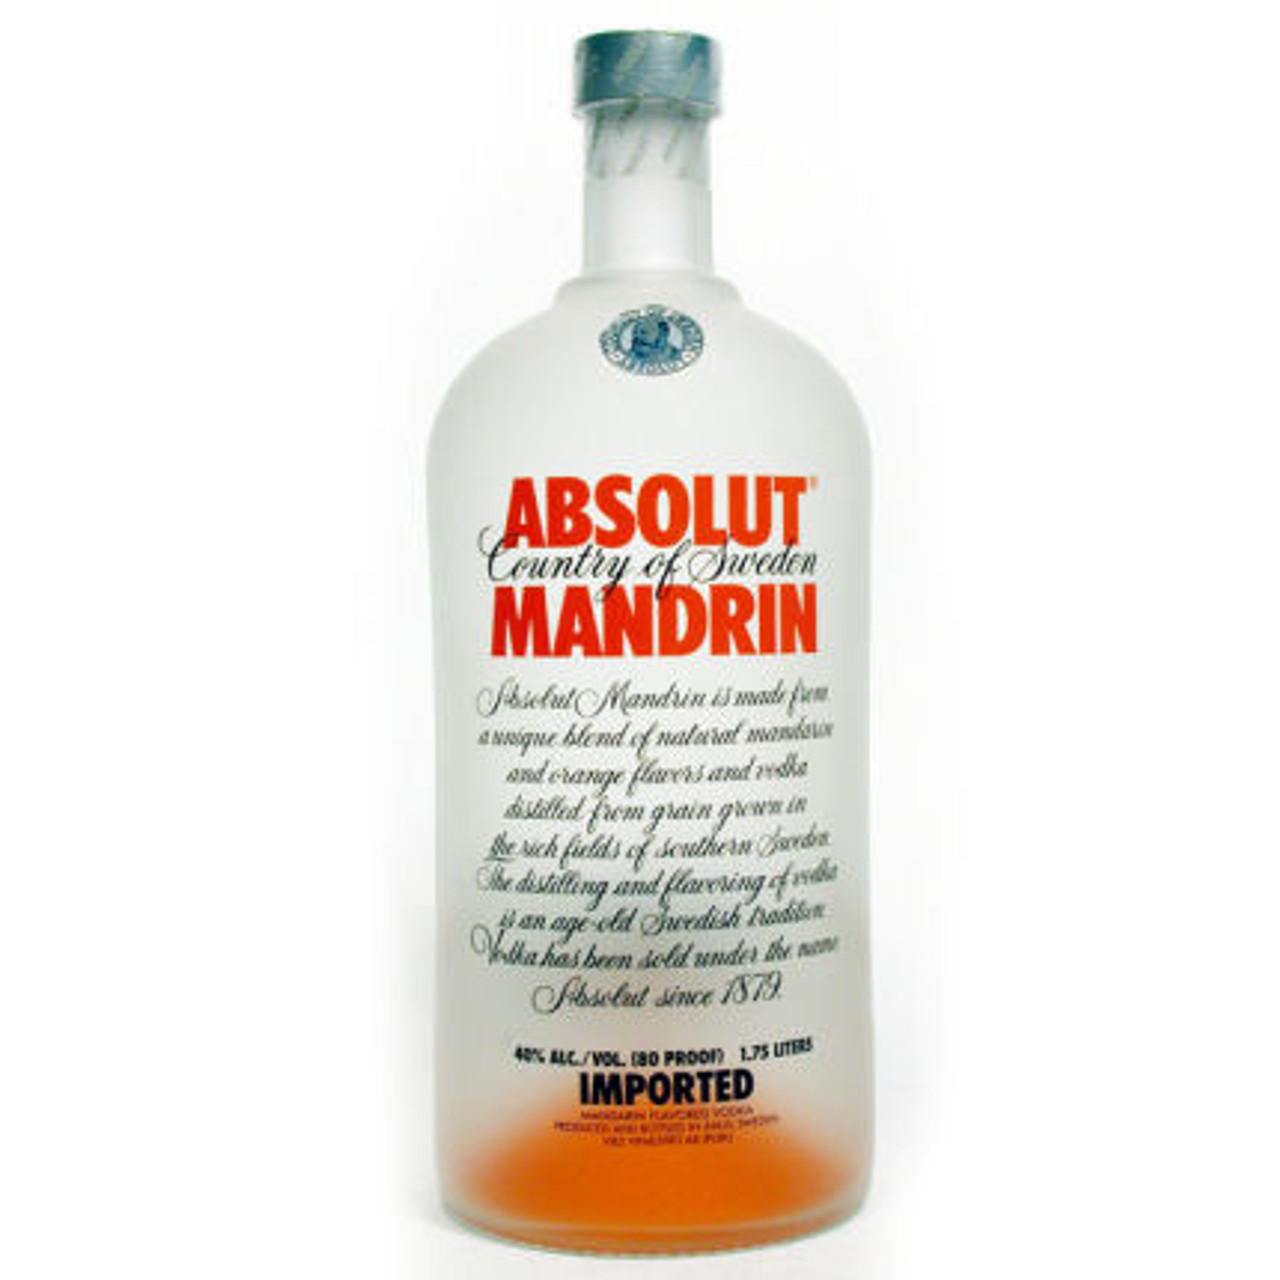 Absolut Mandrin Swedish Grain Vodka 1.75L